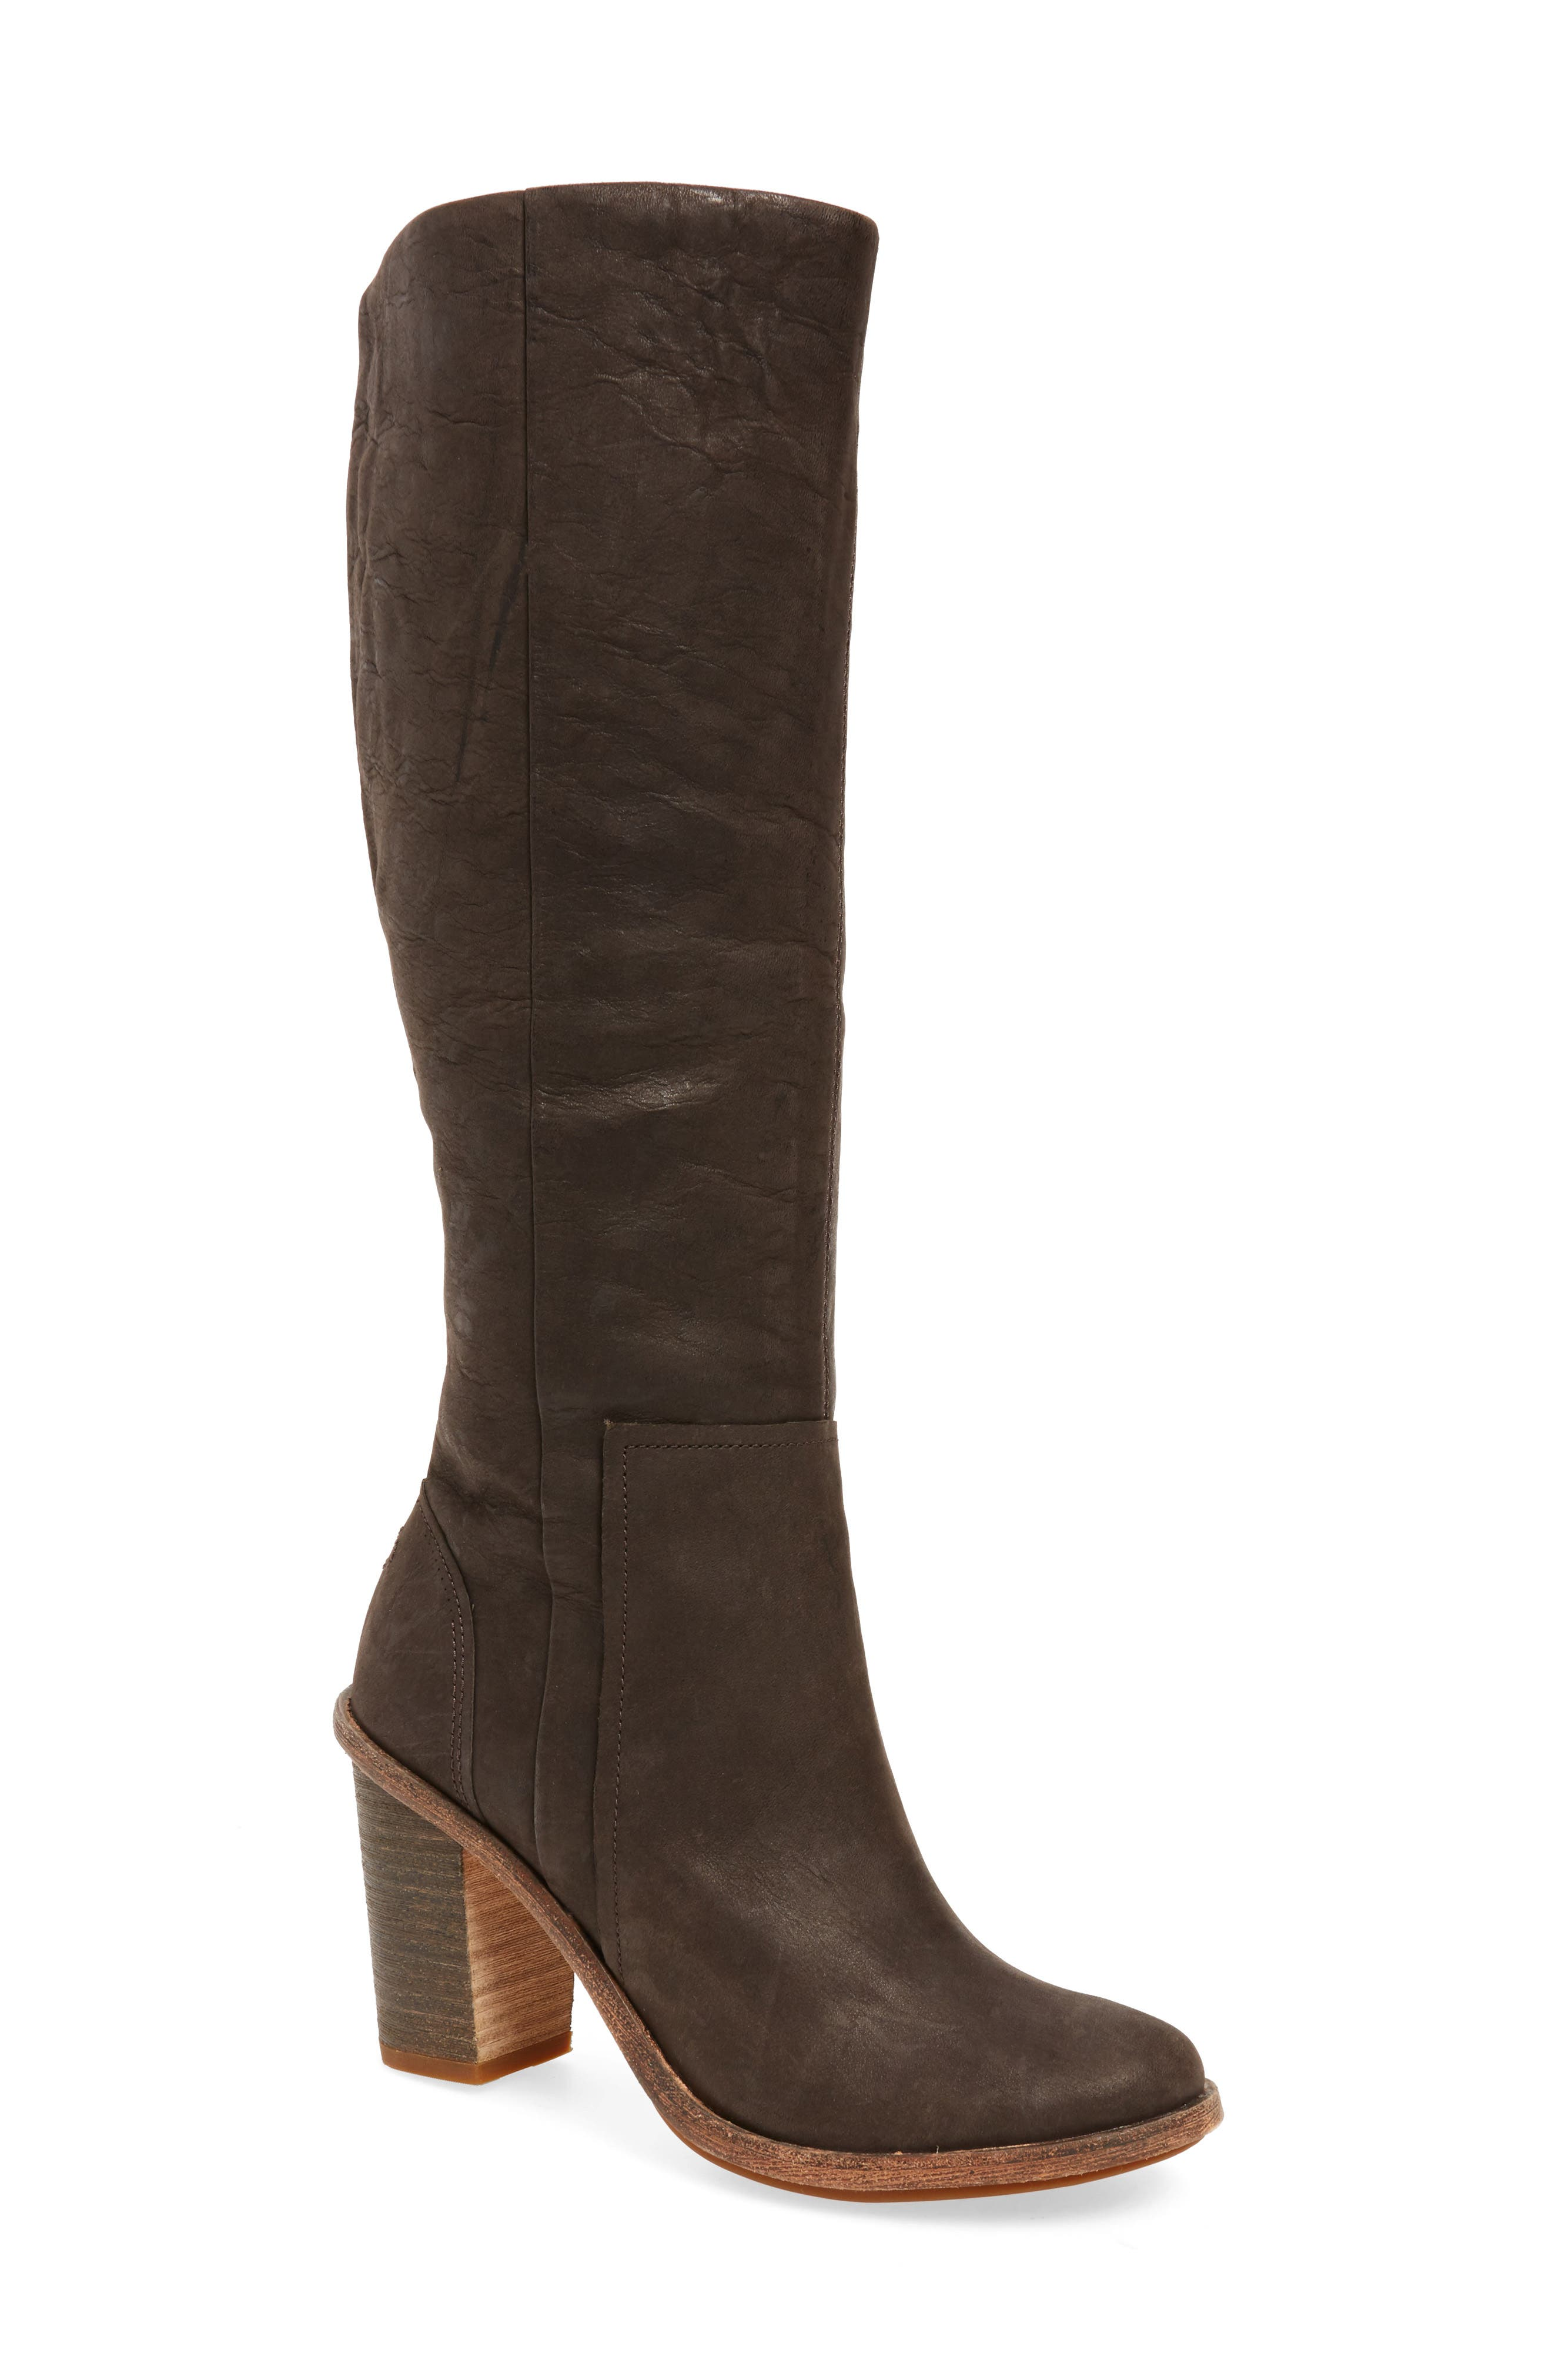 Main Image - Timberland 'Marge' Tall Boot (Women)